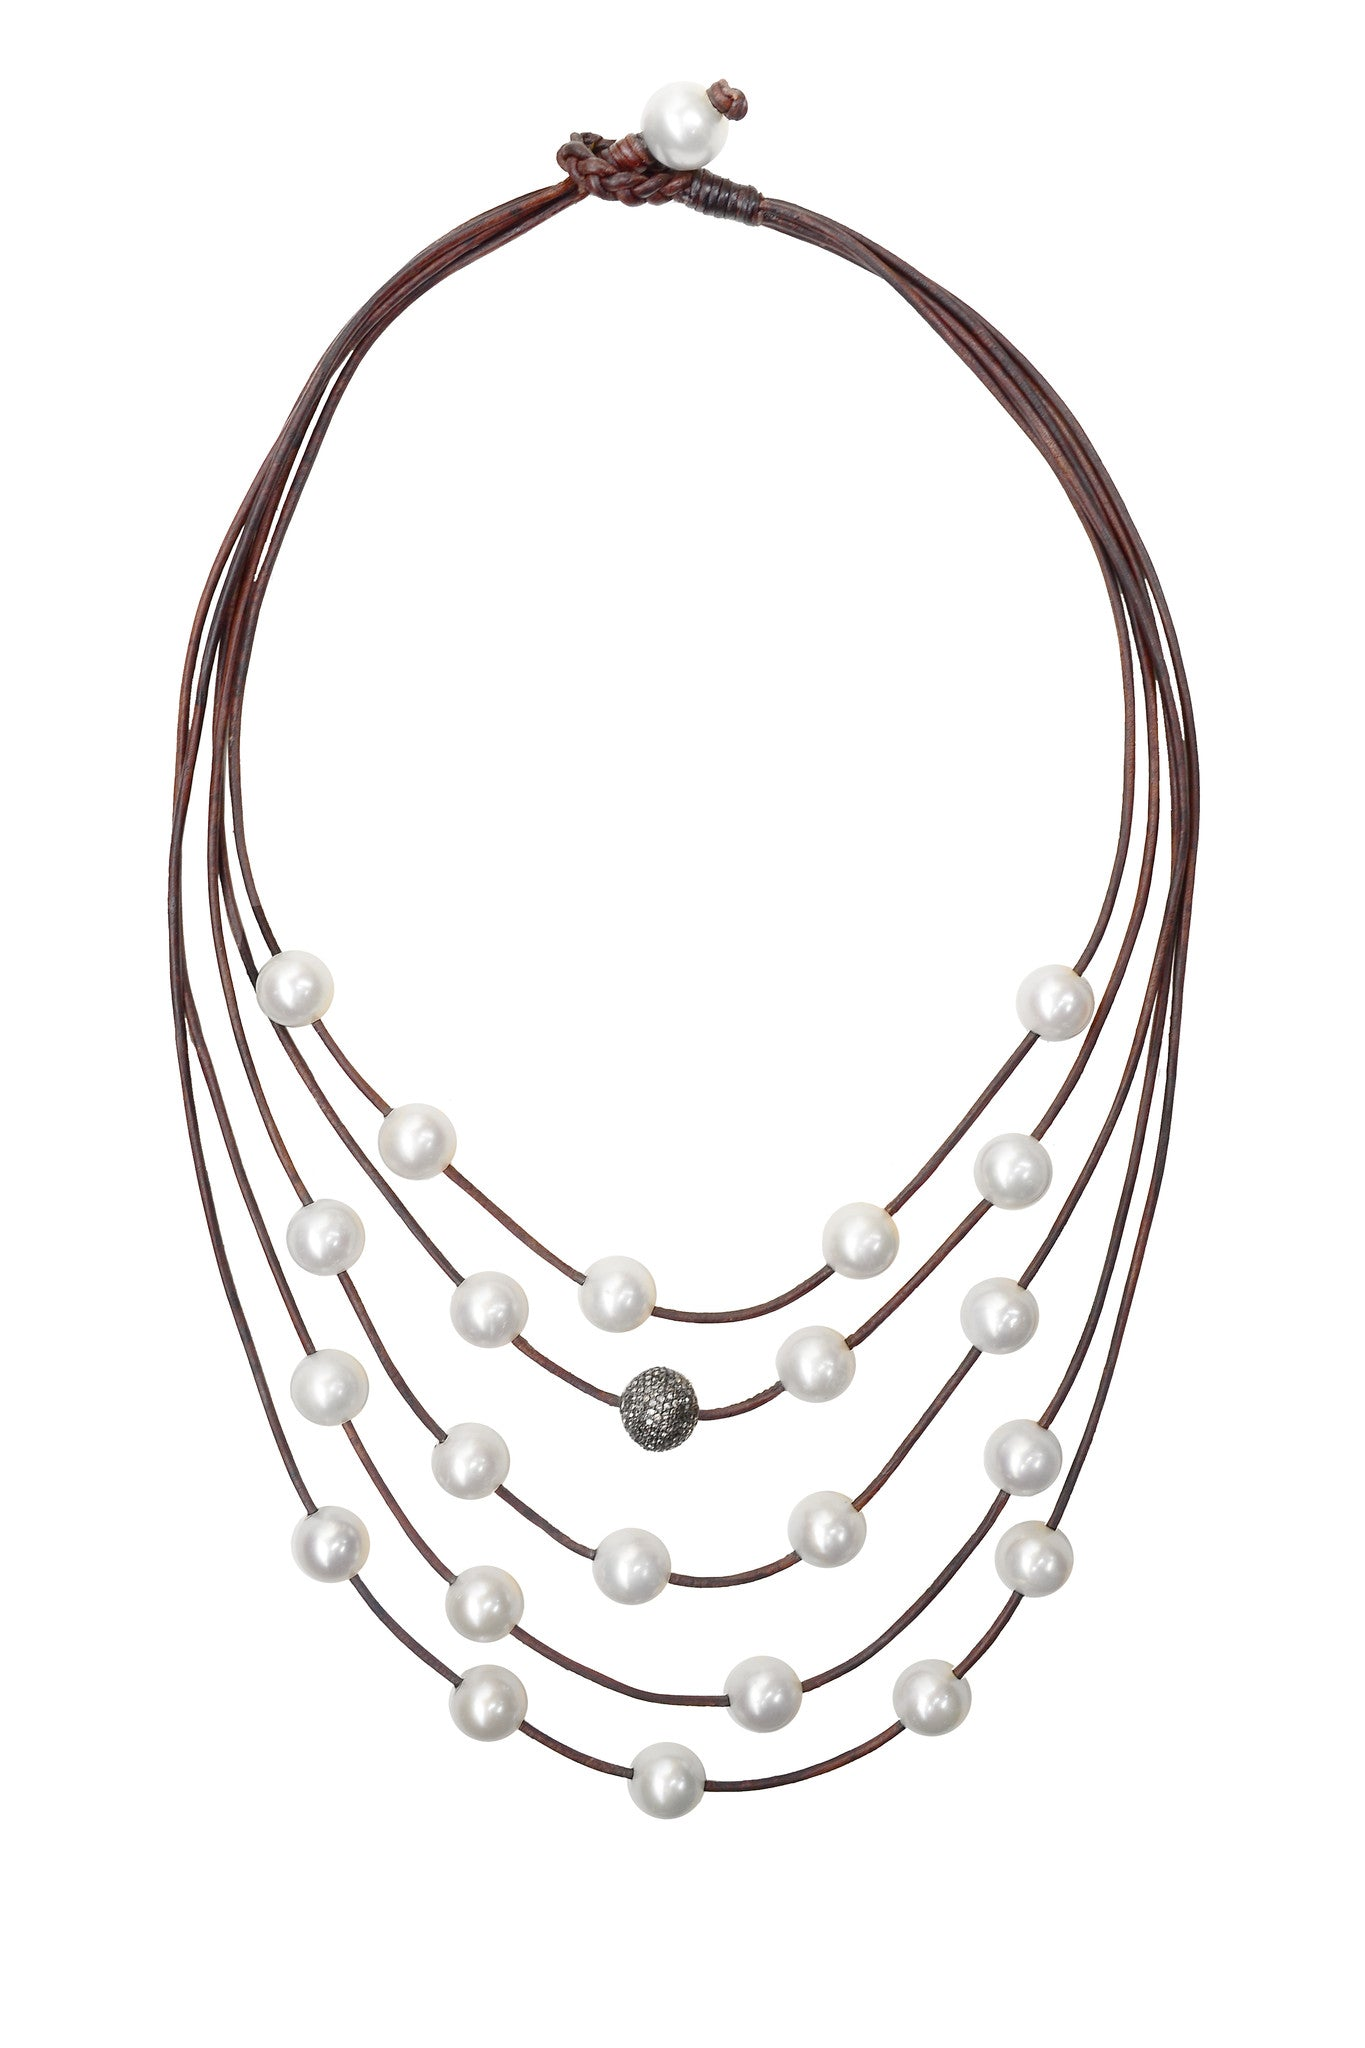 Constellation Necklace, Pavé and Freshwater Pearls - Hottest Designer Pearl and Leather Jewelry | VINCENT PEACH